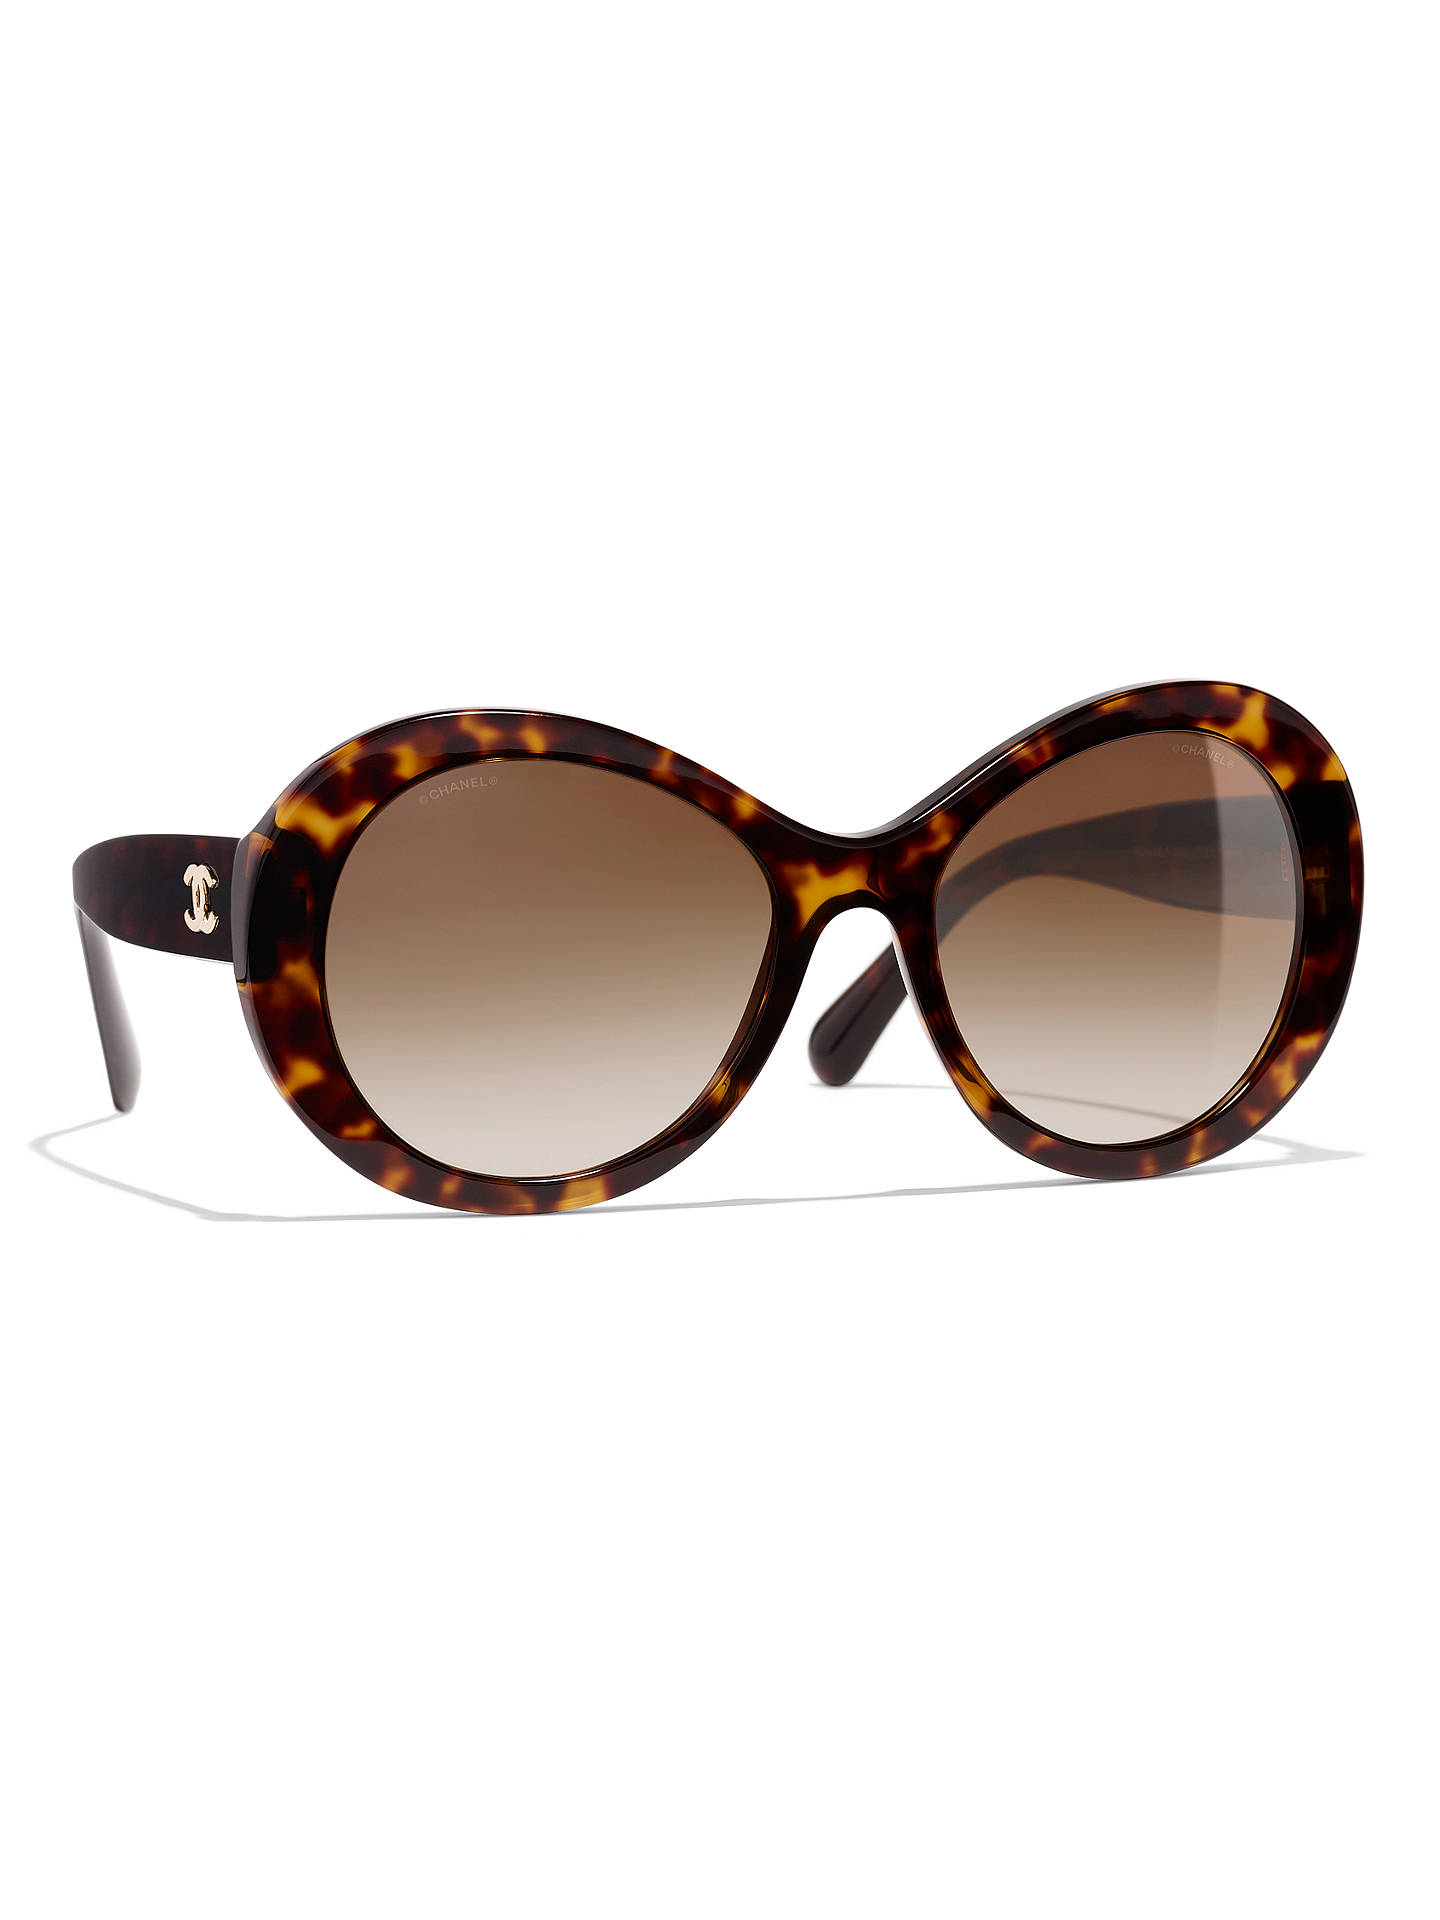 da058f620e24 Buy CHANEL Oval Sunglasses CH5372 Tortoise Brown Gradient Online at  johnlewis.com ...